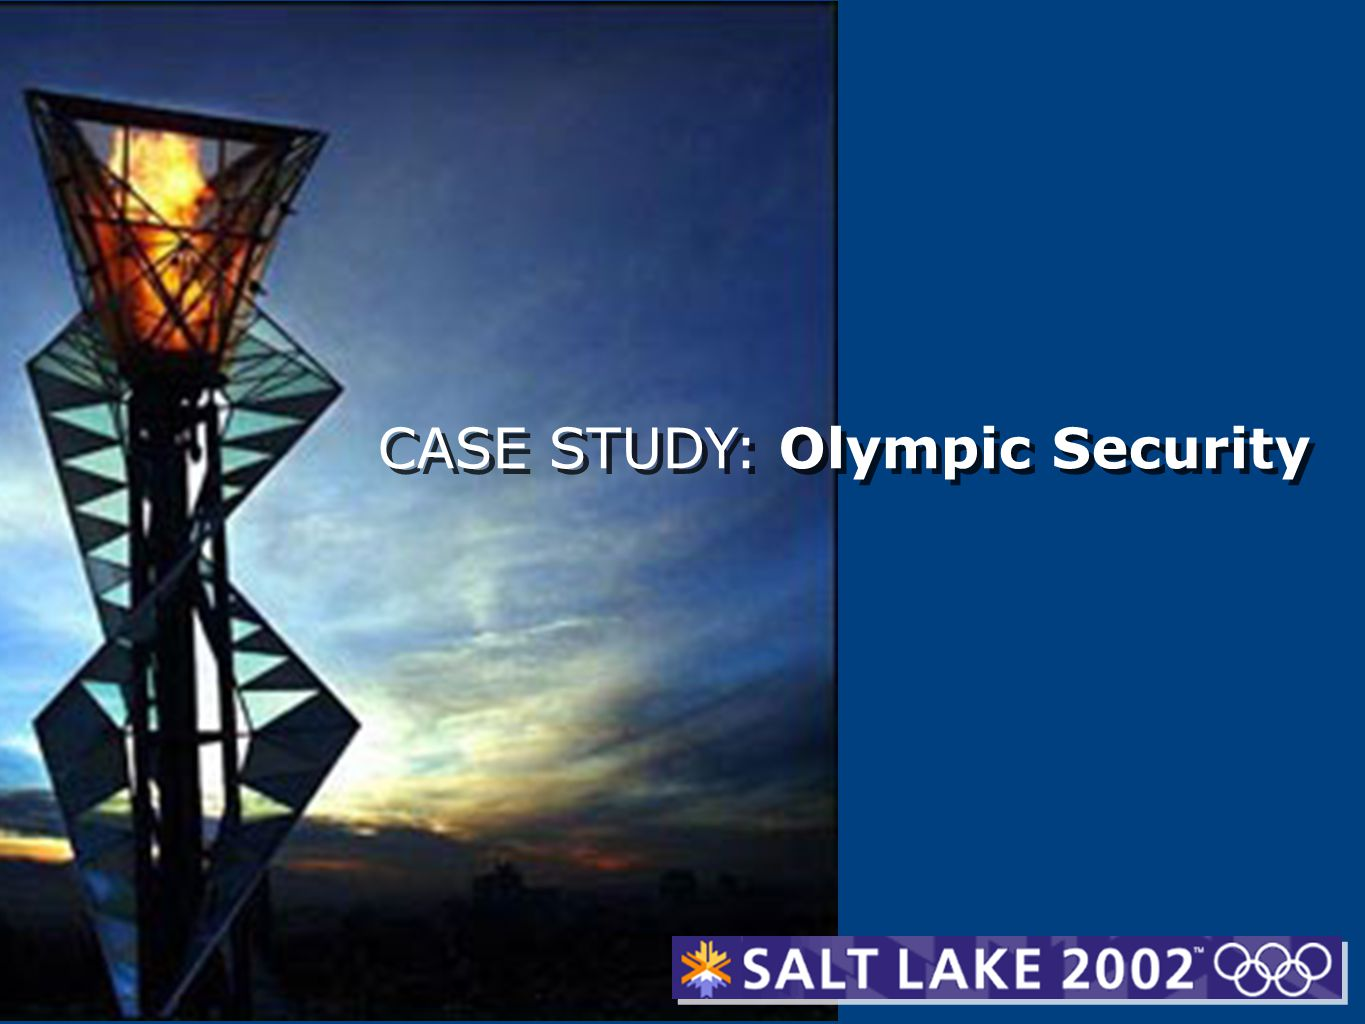 CASE STUDY: Olympic Security